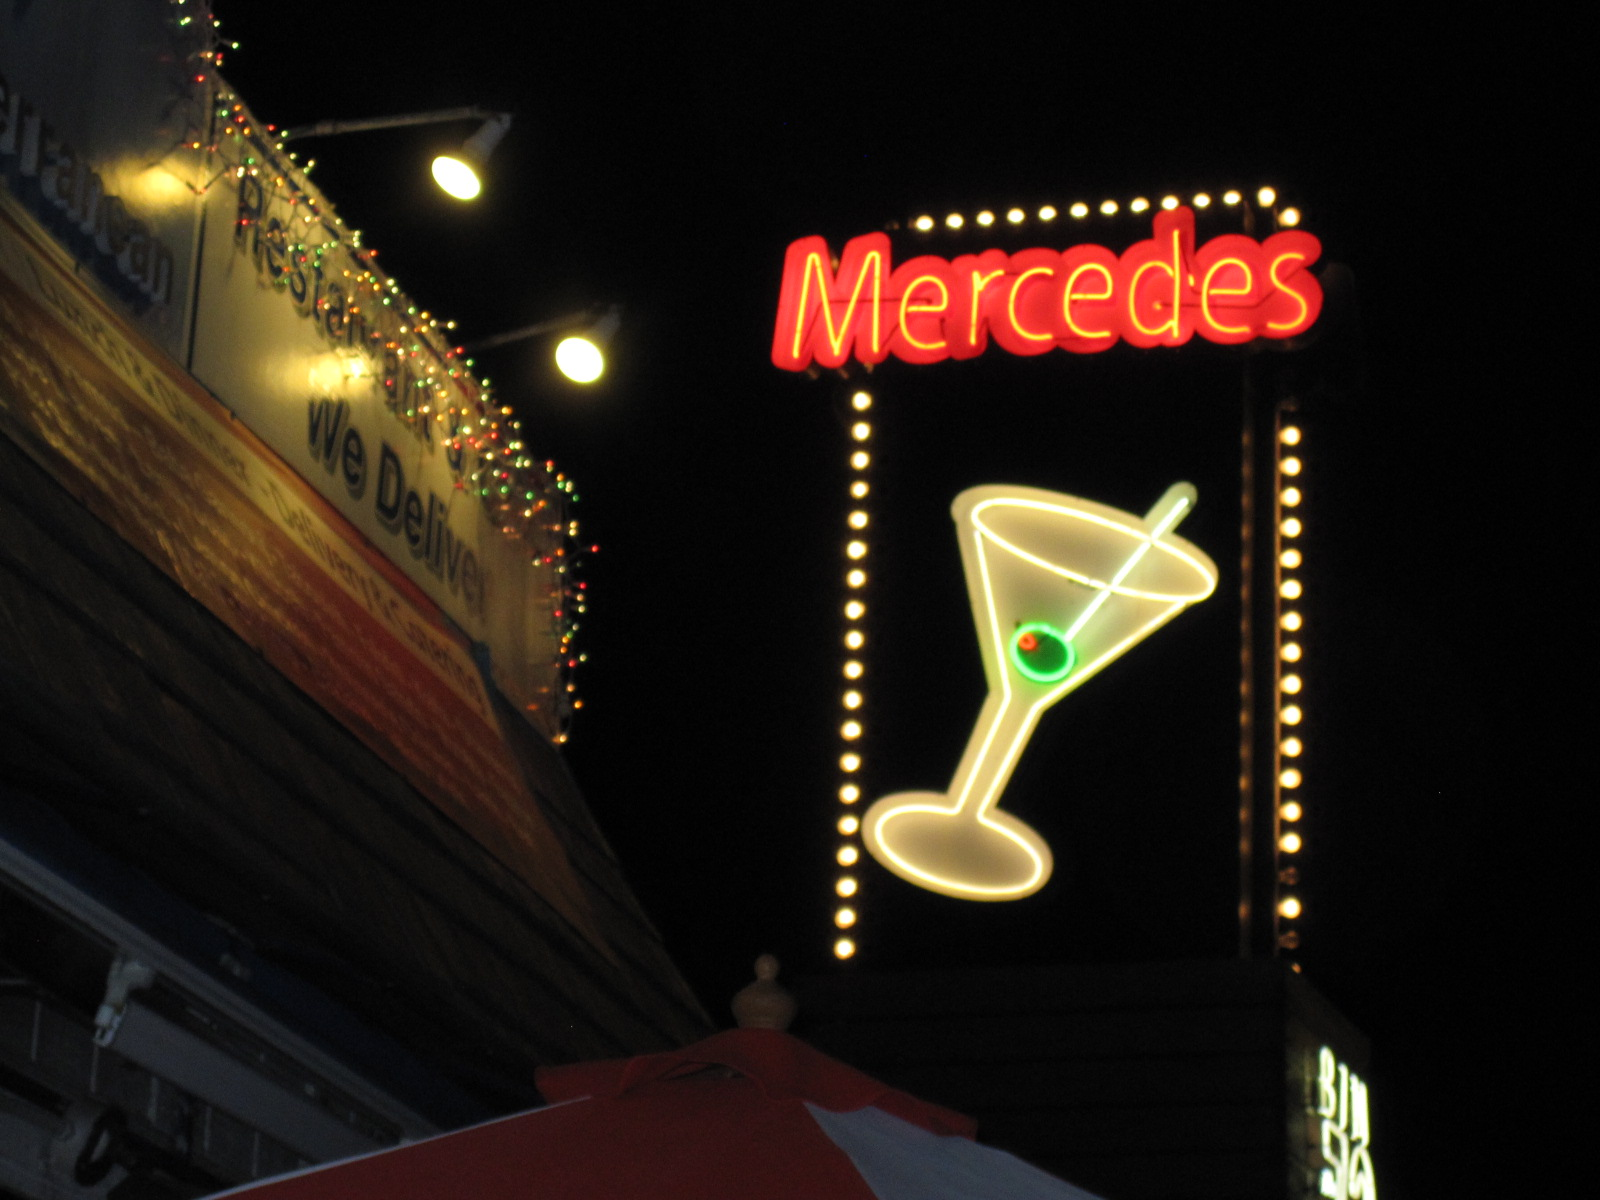 Kris 39 s 2011 a photo a day mercedes grille martini bar for Mercedes benz marina del rey